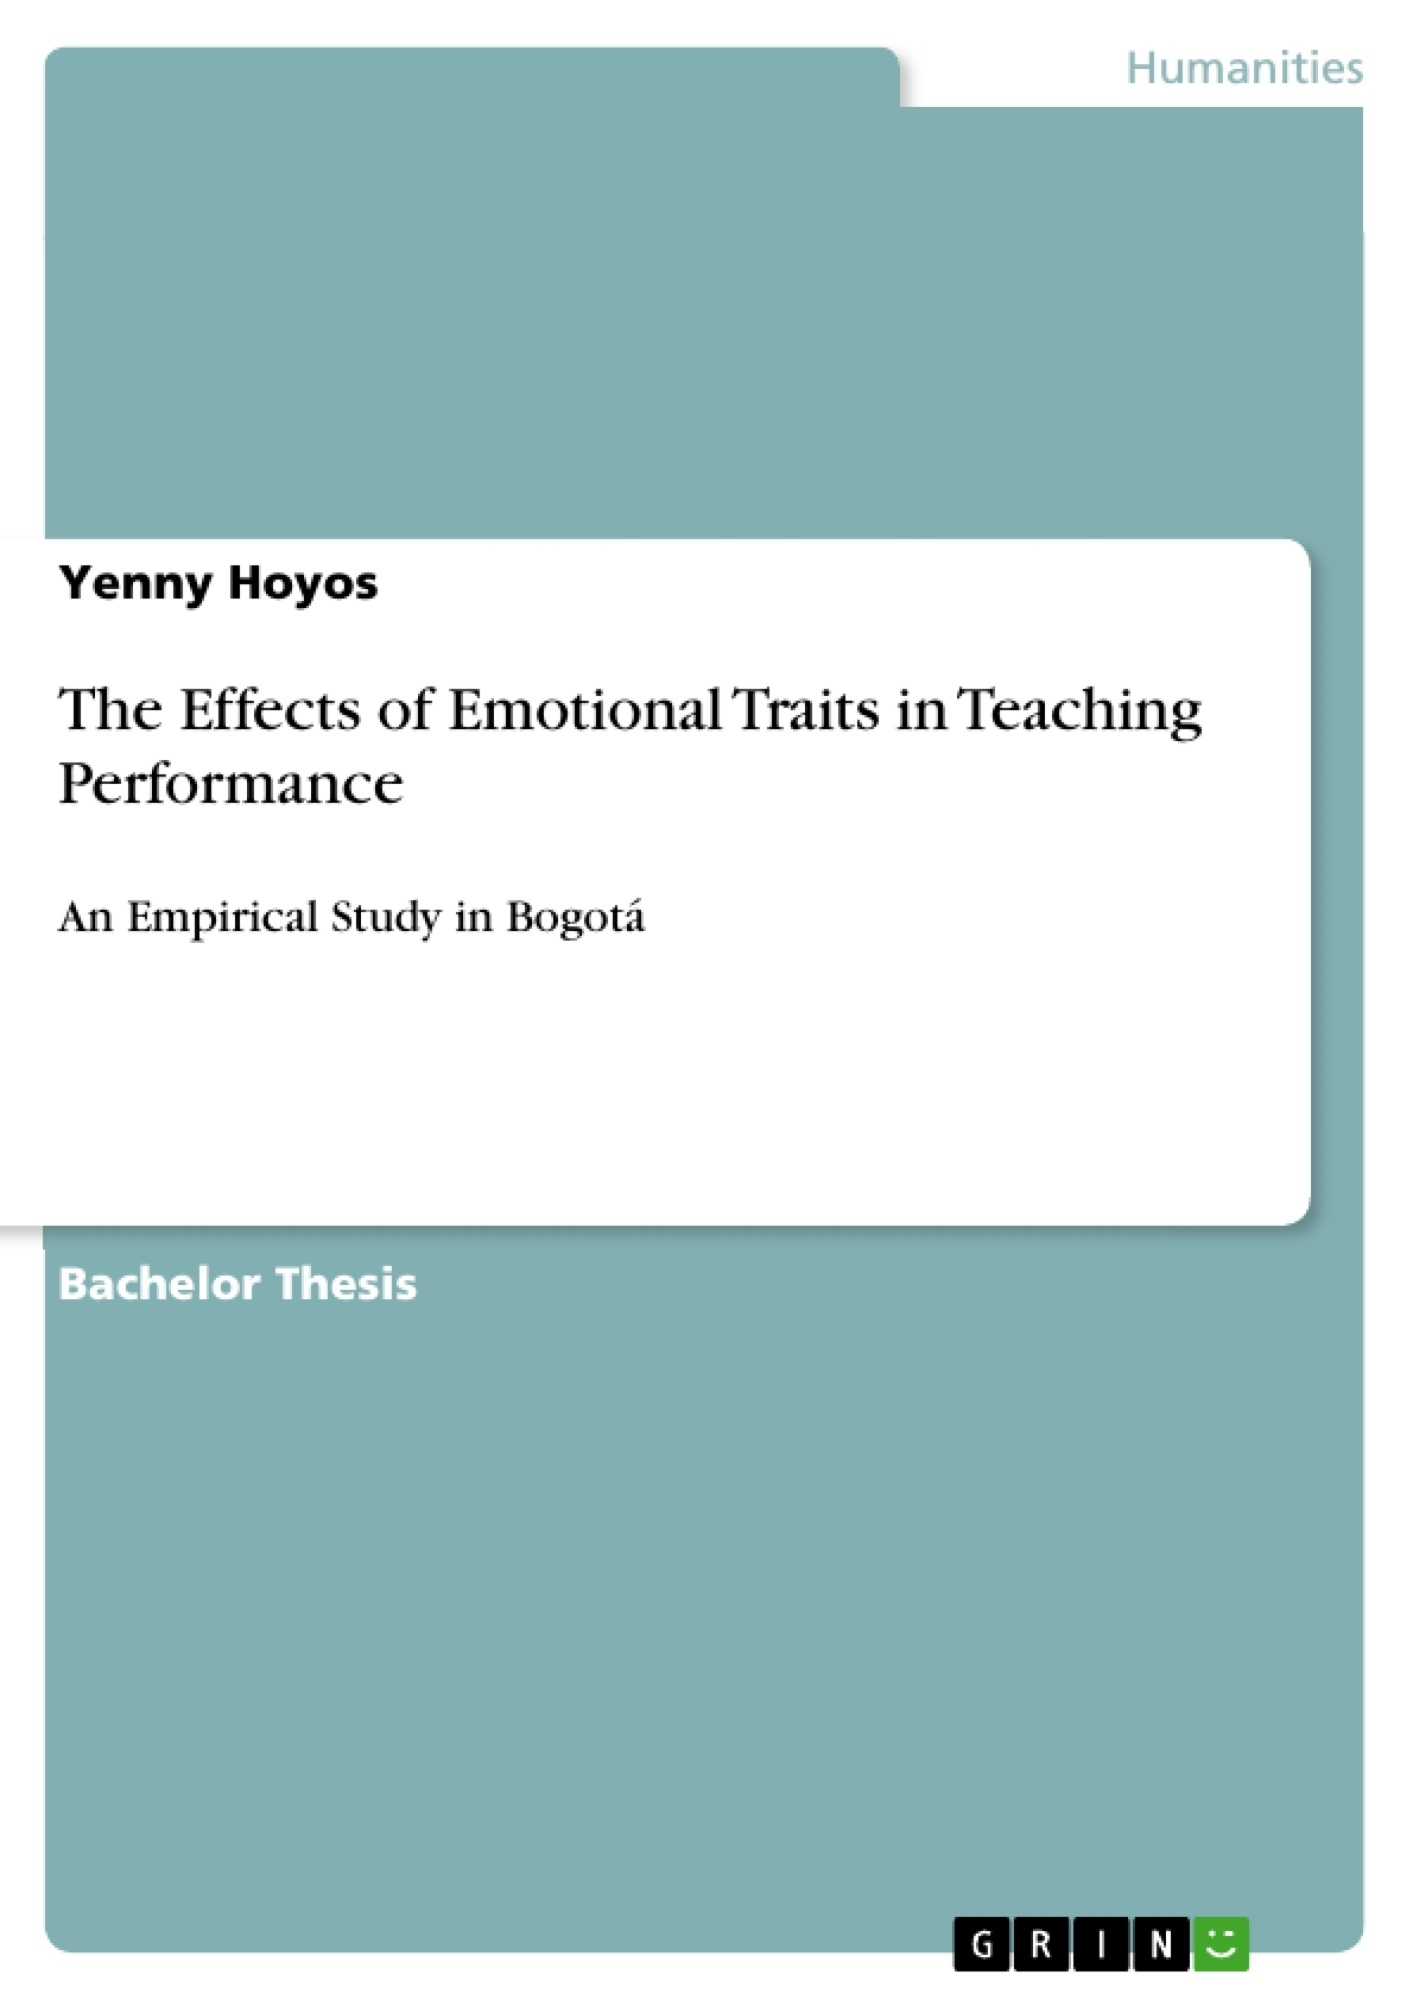 Title: The Effects of Emotional Traits in Teaching Performance